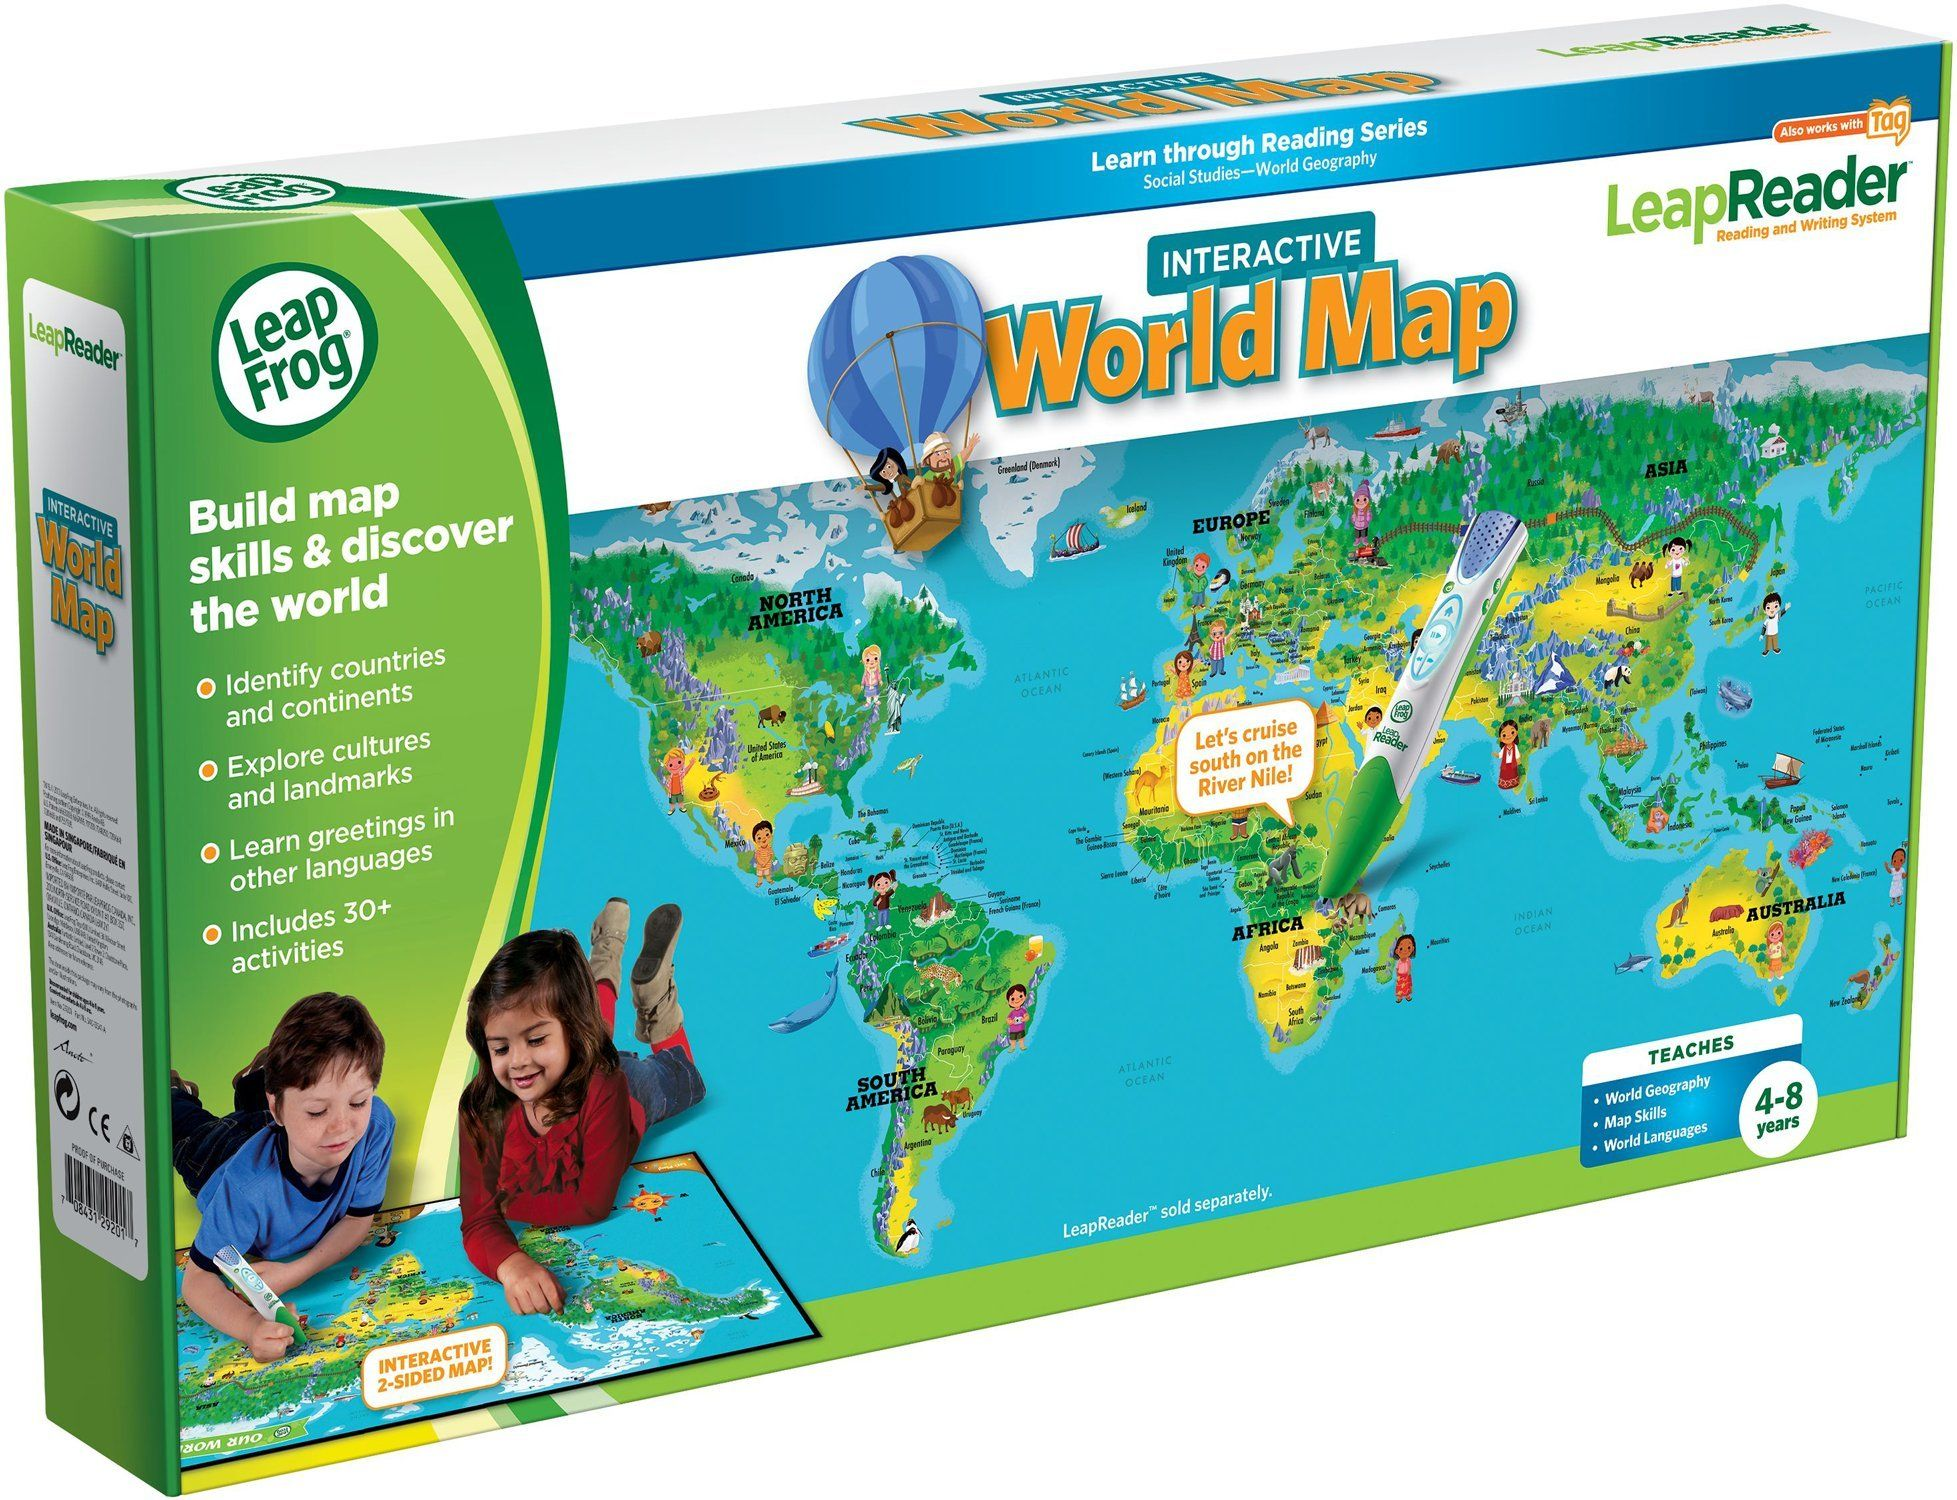 20 leapfrog leapreader interactive world map works with tag toys 20 leapfrog leapreader interactive world map works with tag toys games gumiabroncs